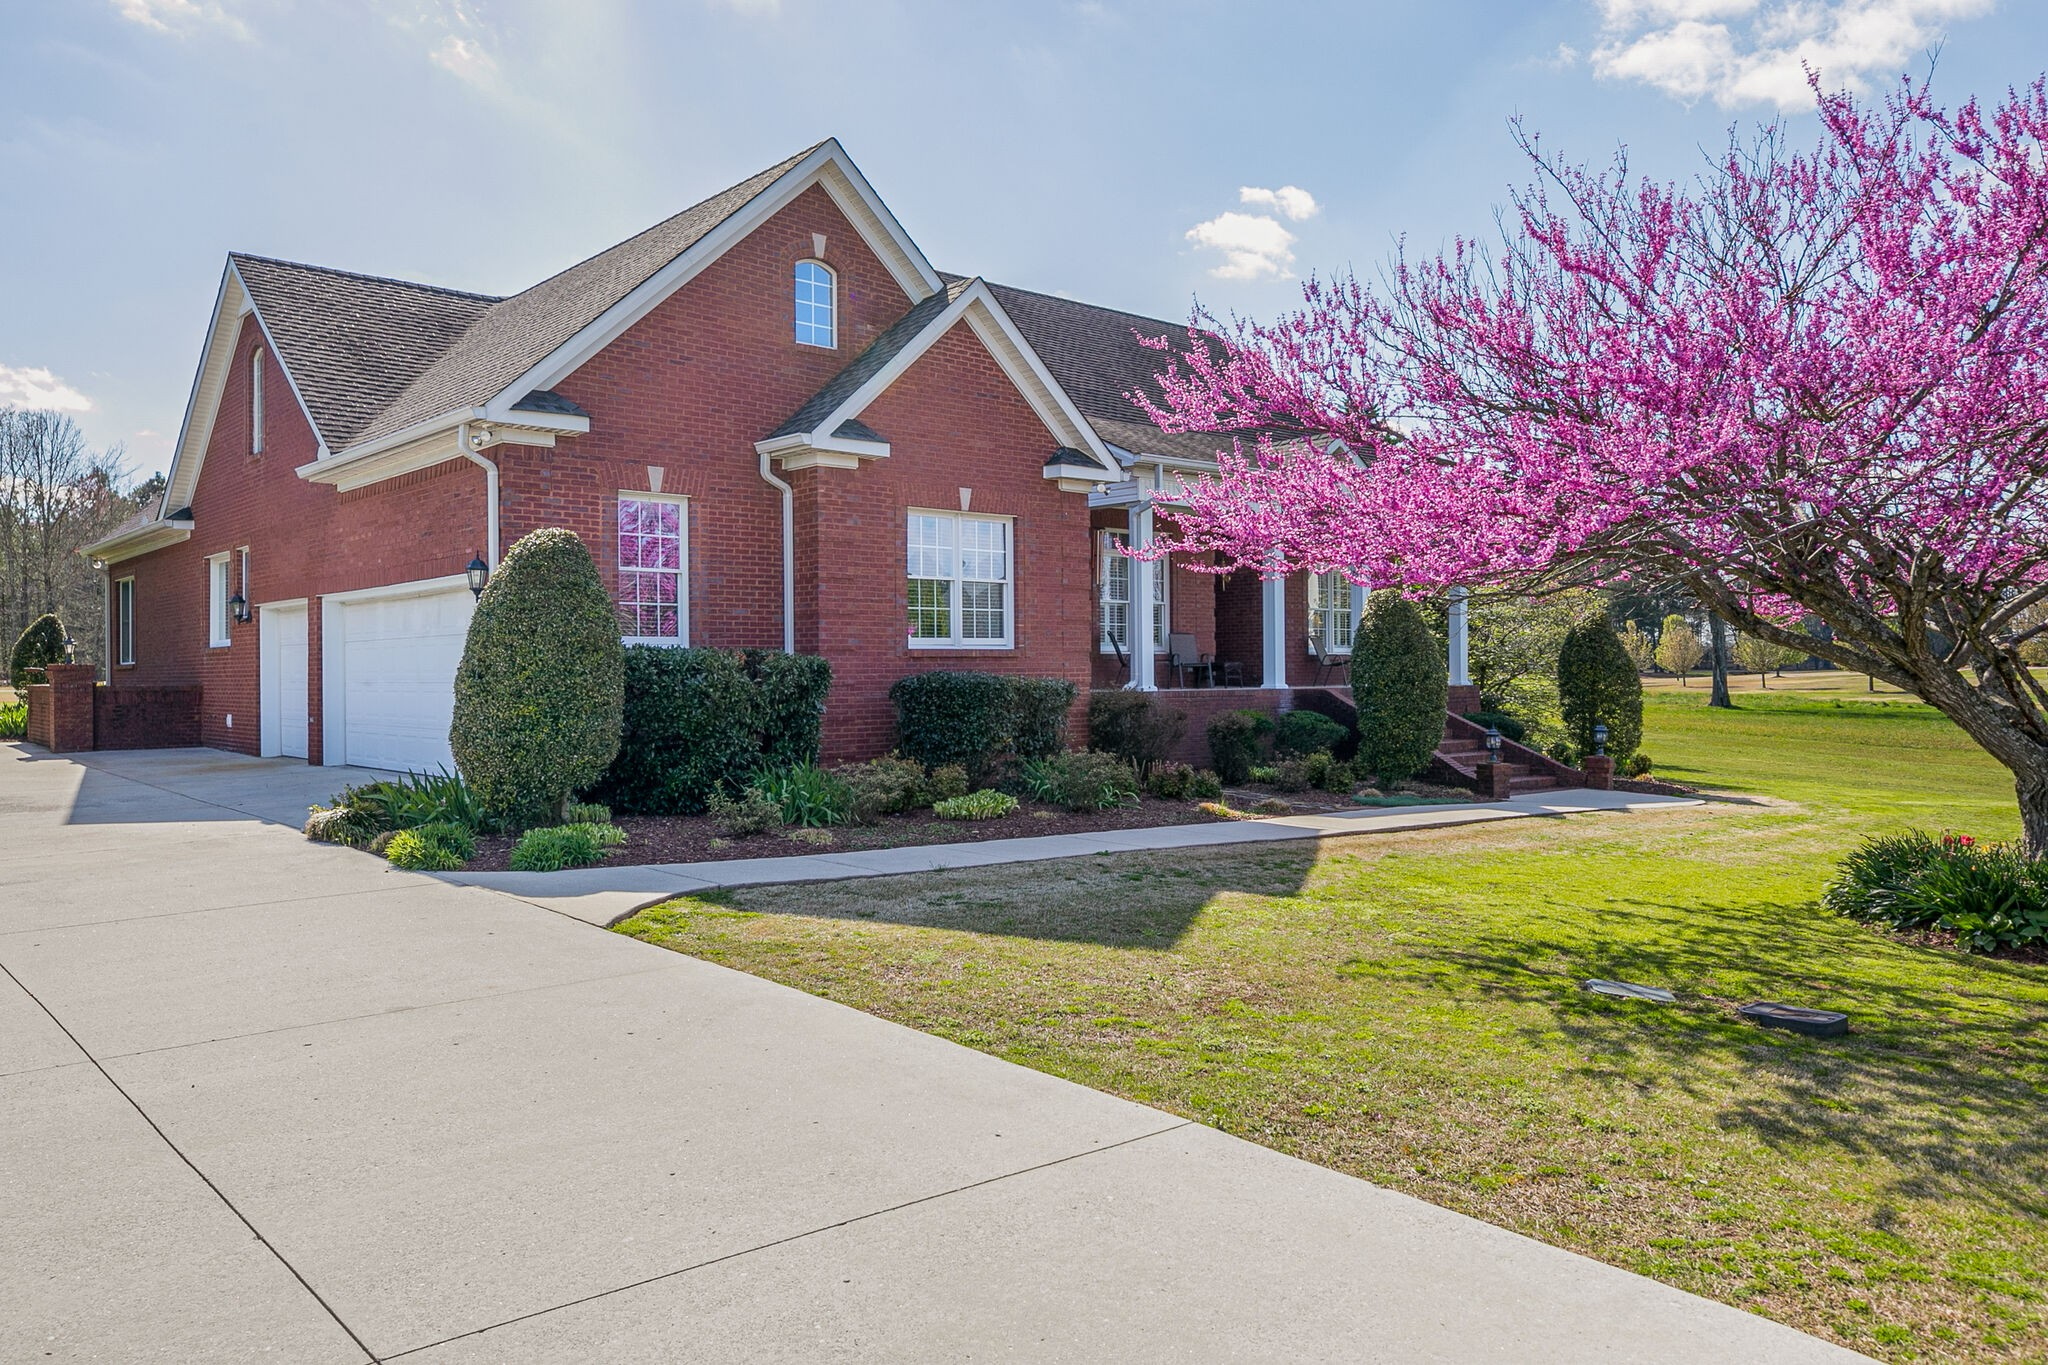 608 Willow Brook Dr Property Photo - Manchester, TN real estate listing